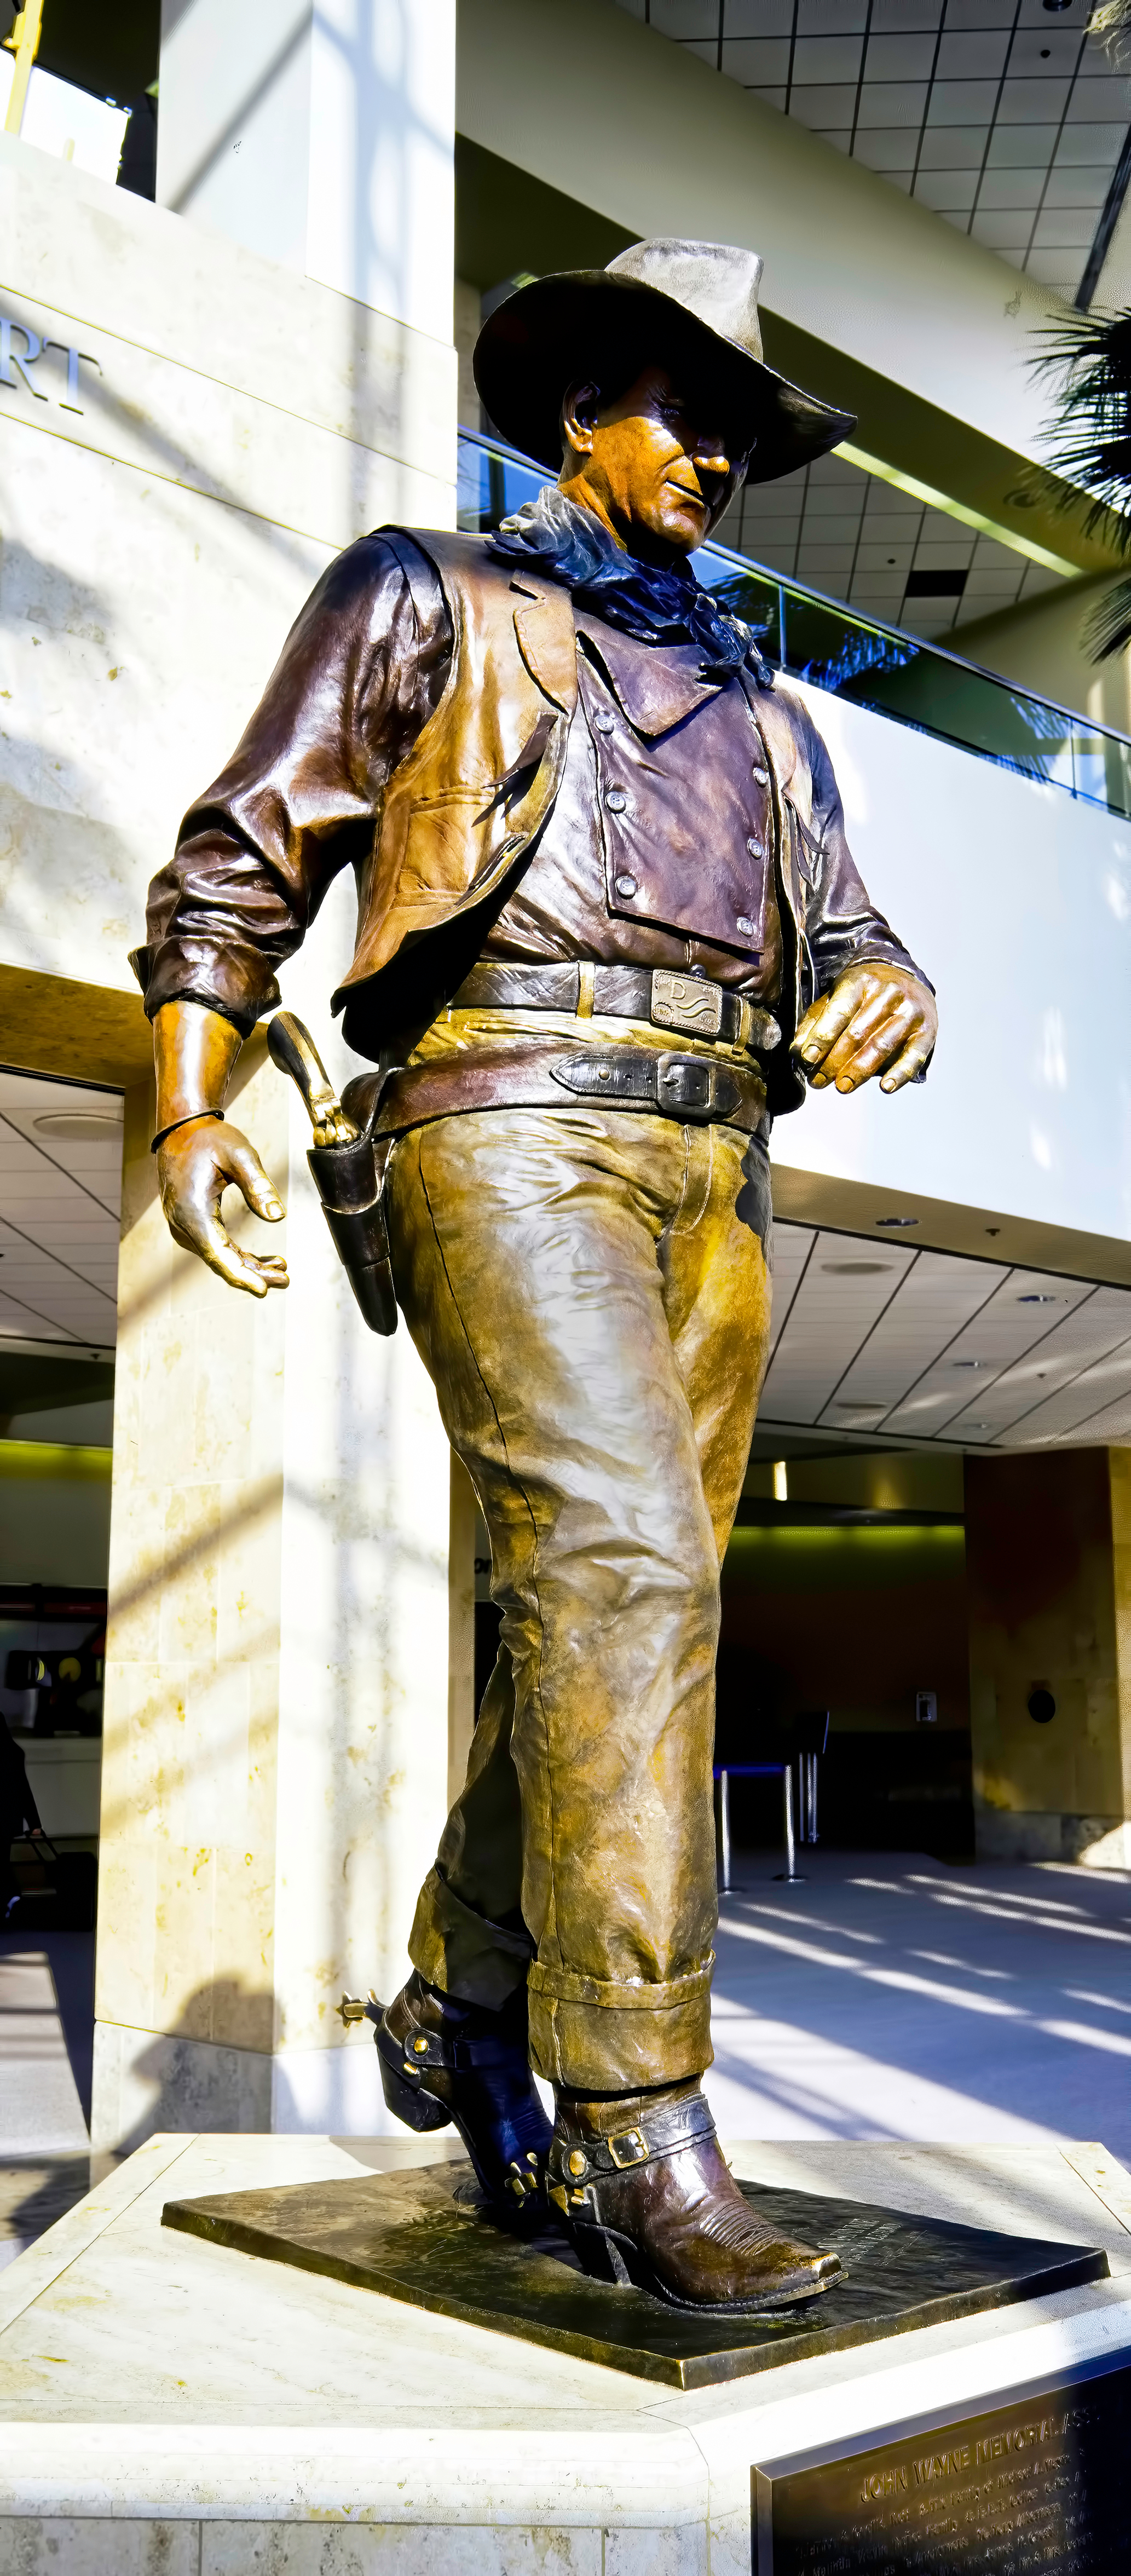 Orange County, California , May ,2010 - On June 20, 1979, the Orange County Board of Supervisors renamed Orange County Airport to John Wayne Airport. Showing a life size bronze statue of John Wayne ""